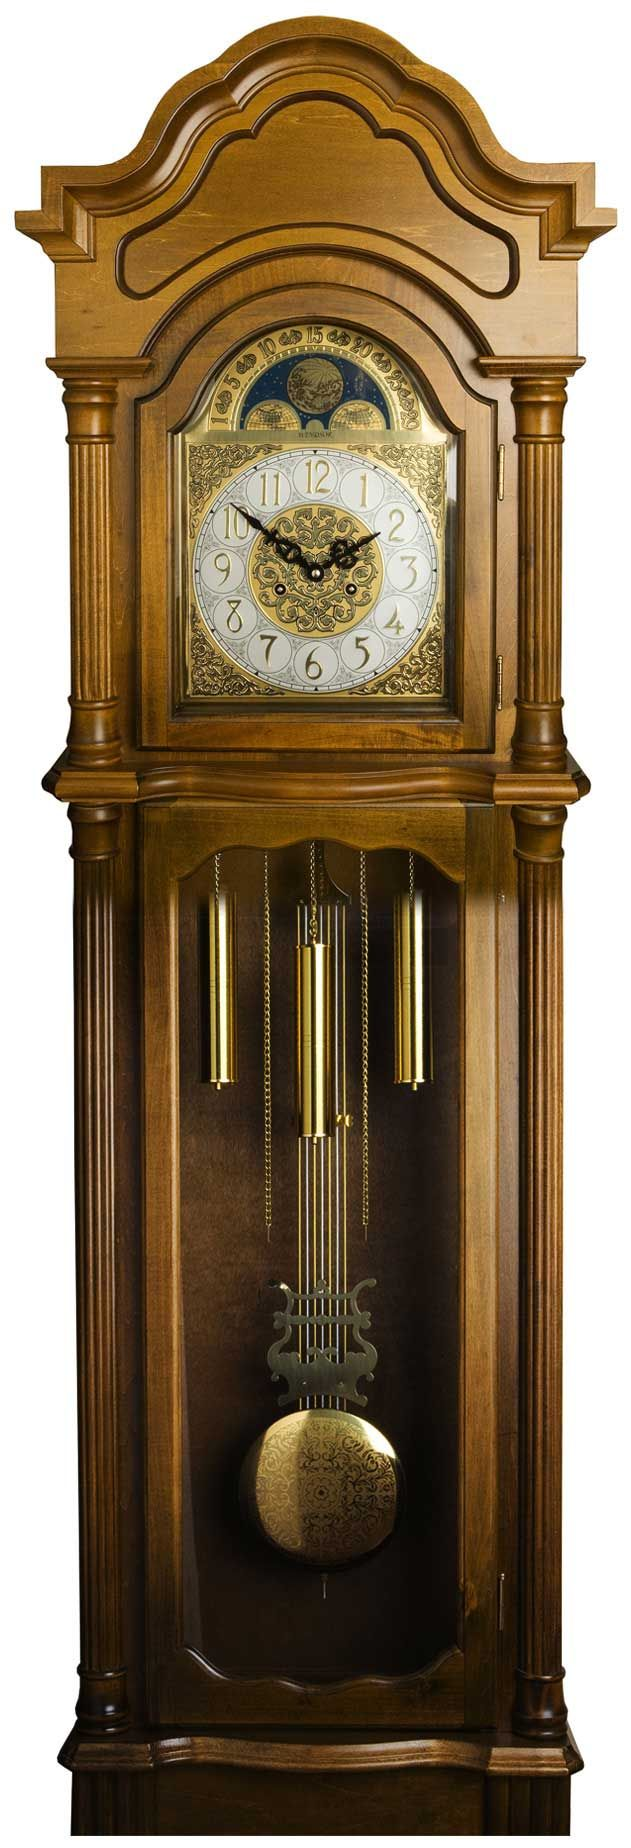 Collectible Grandfather Clocks Pre-1930 eBay